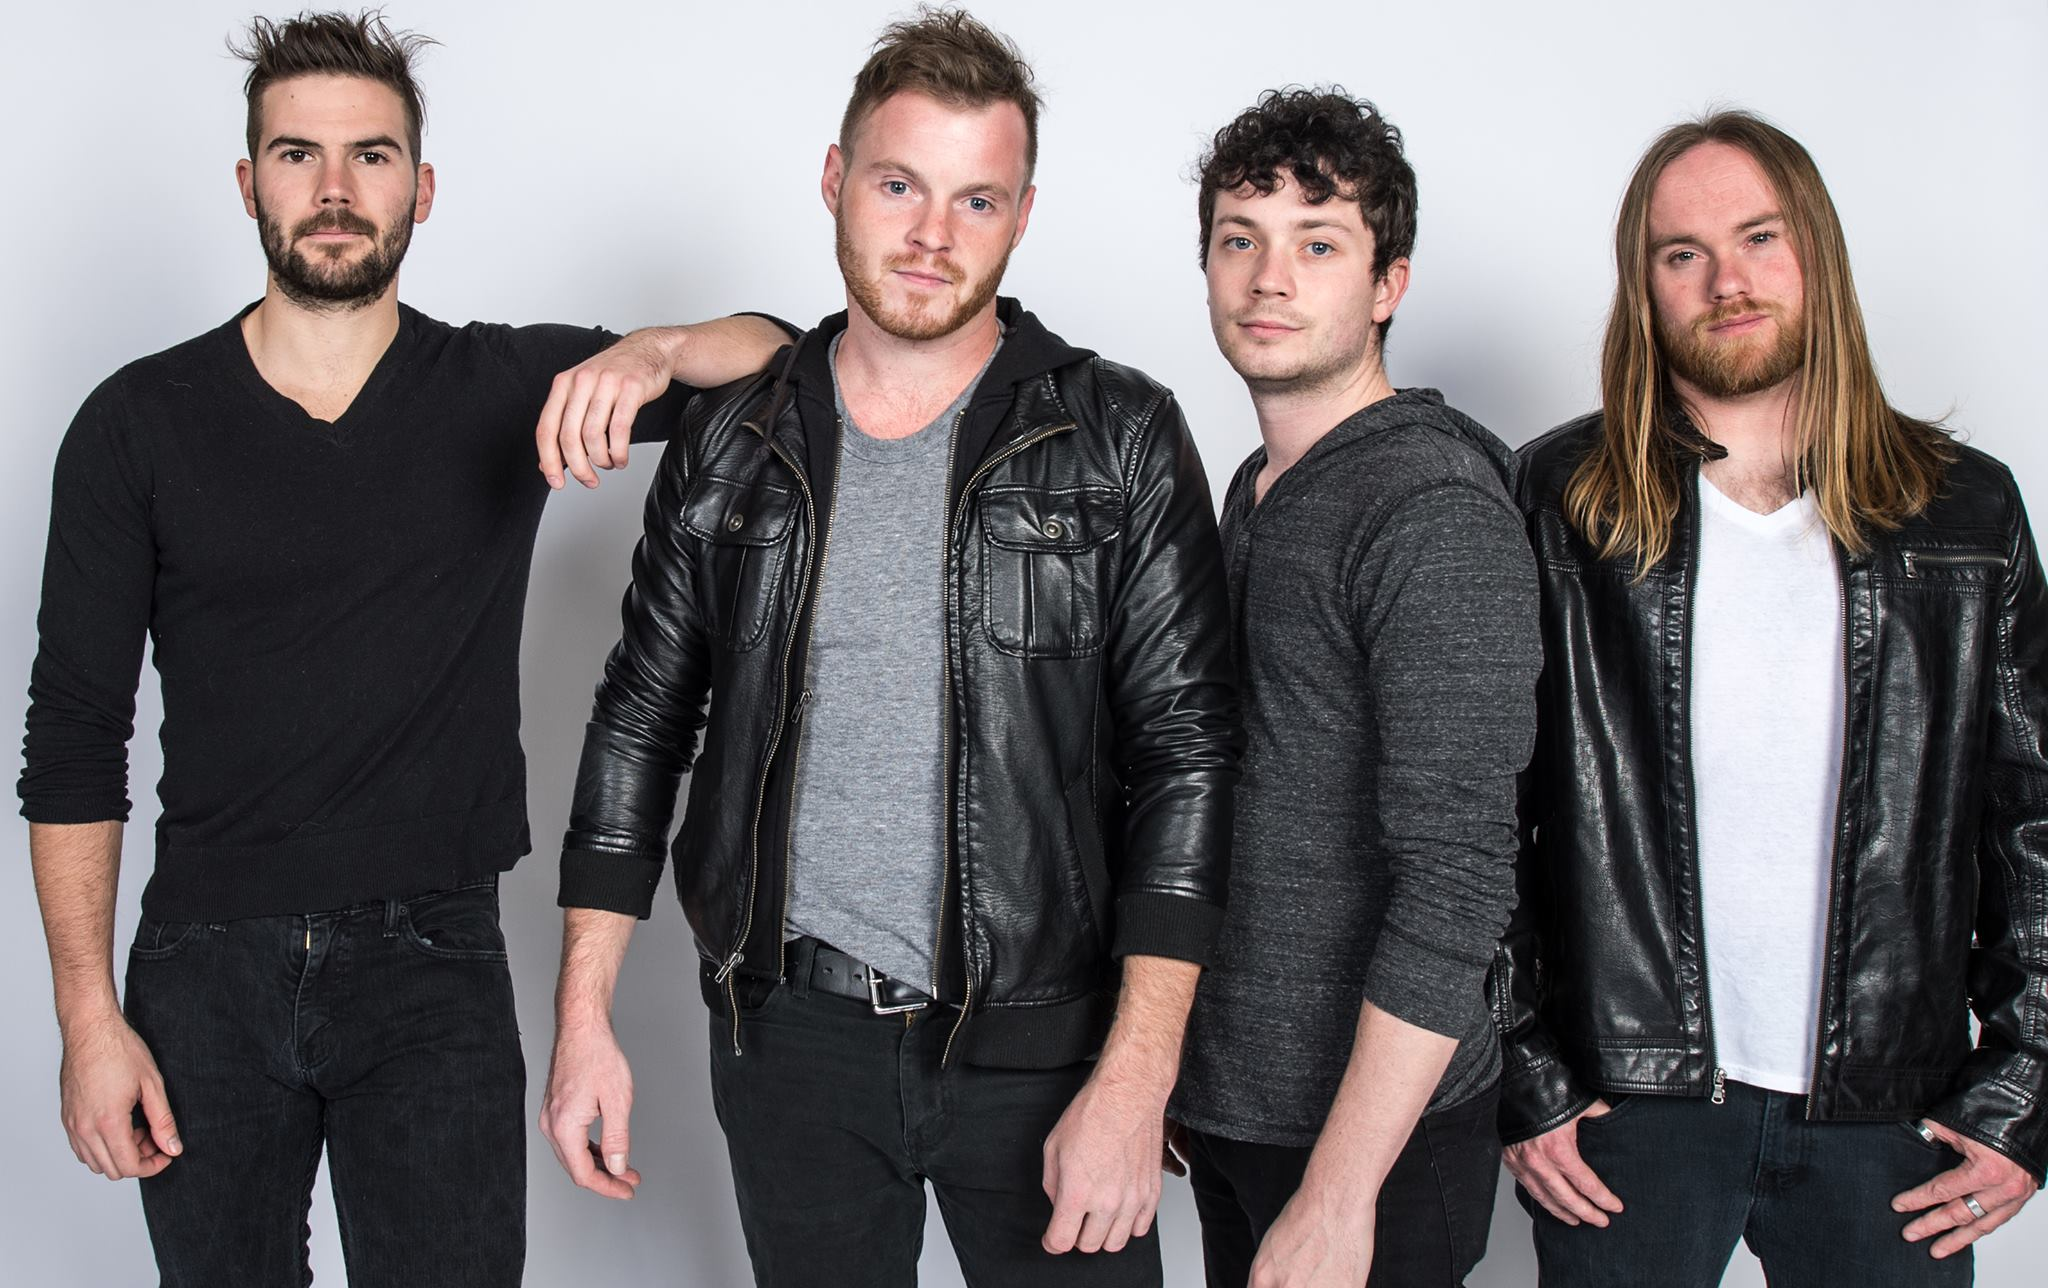 The JJ Rupp Band